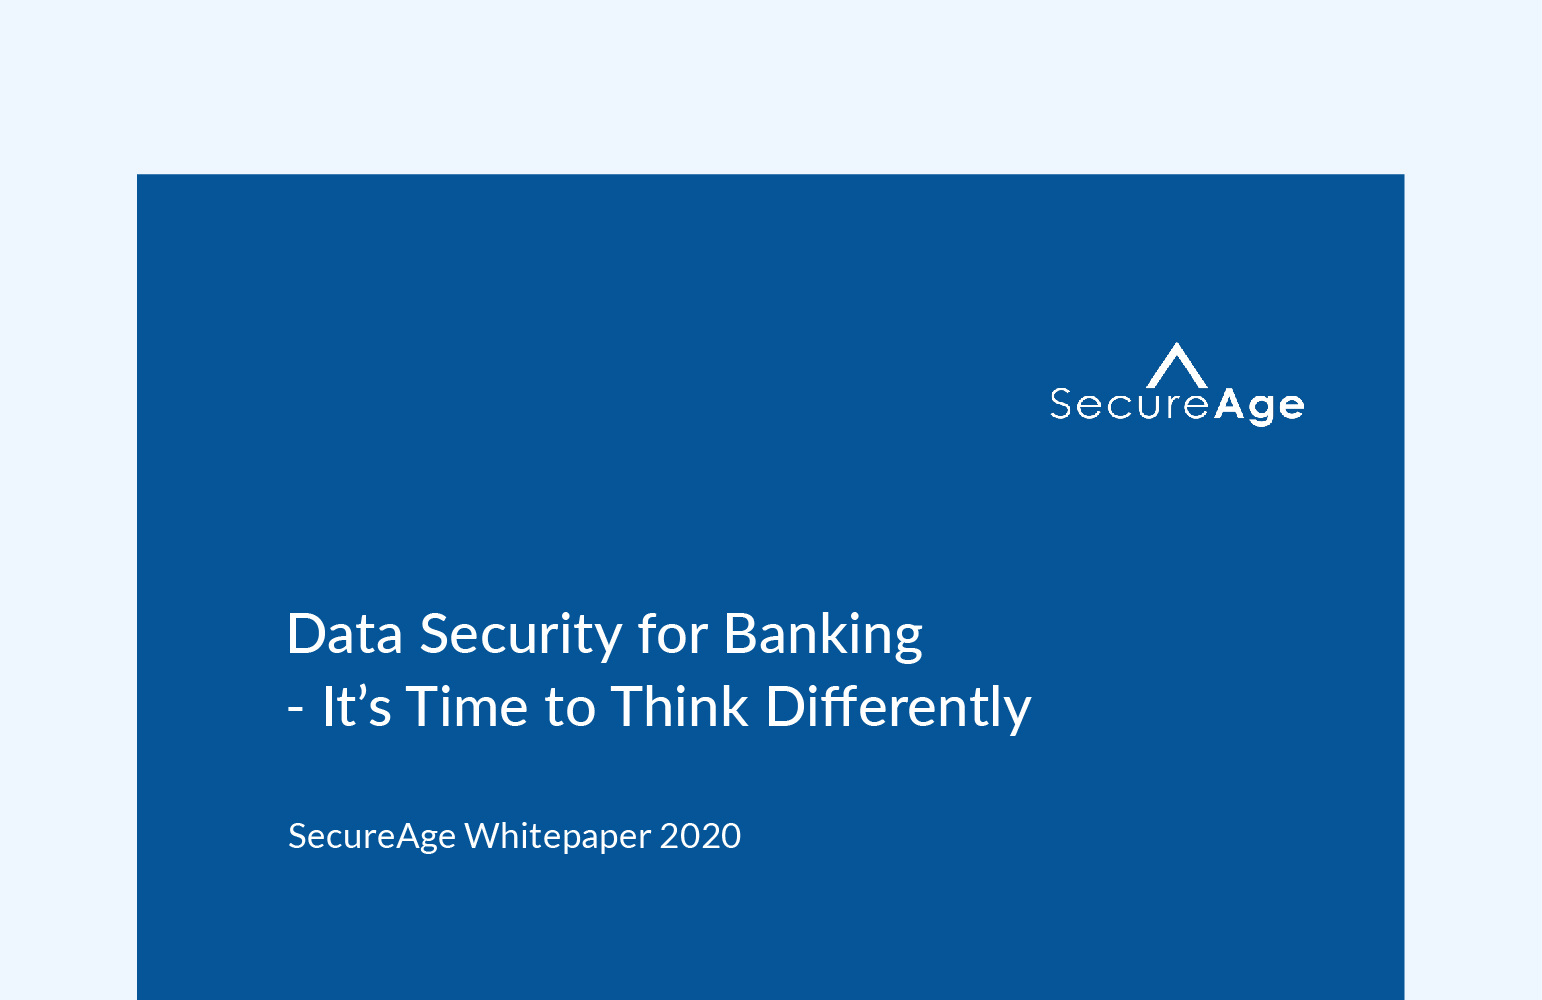 Data Security for Banking - It's Time to Think Differently